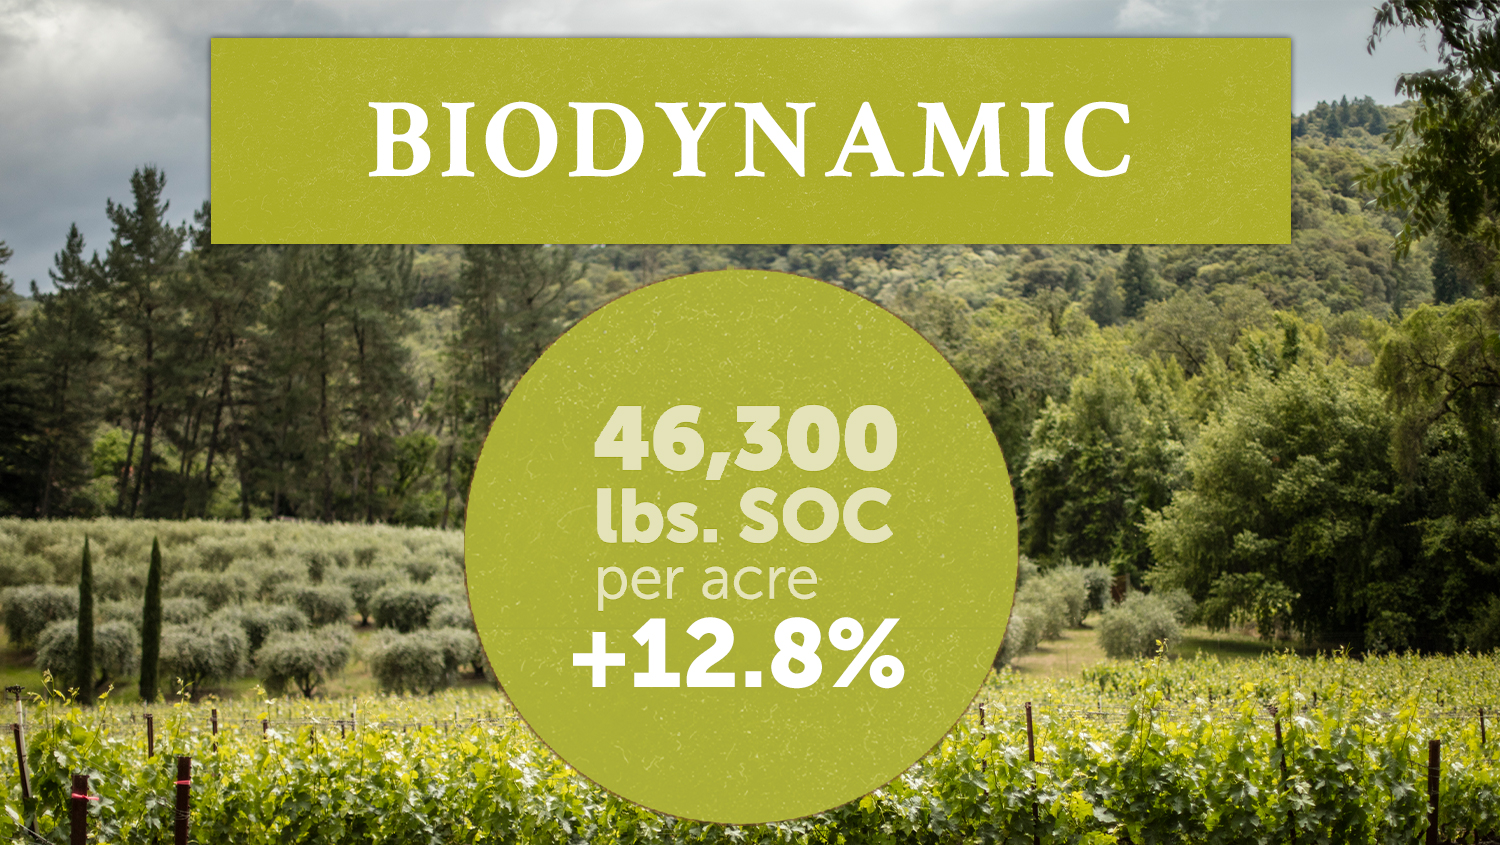 Biodynamic vineyards studied held 12.8% more SOC. Greater soil resilience leads to plant resilience--and a vineyard that more effectively reintegrates atmospheric CO2.